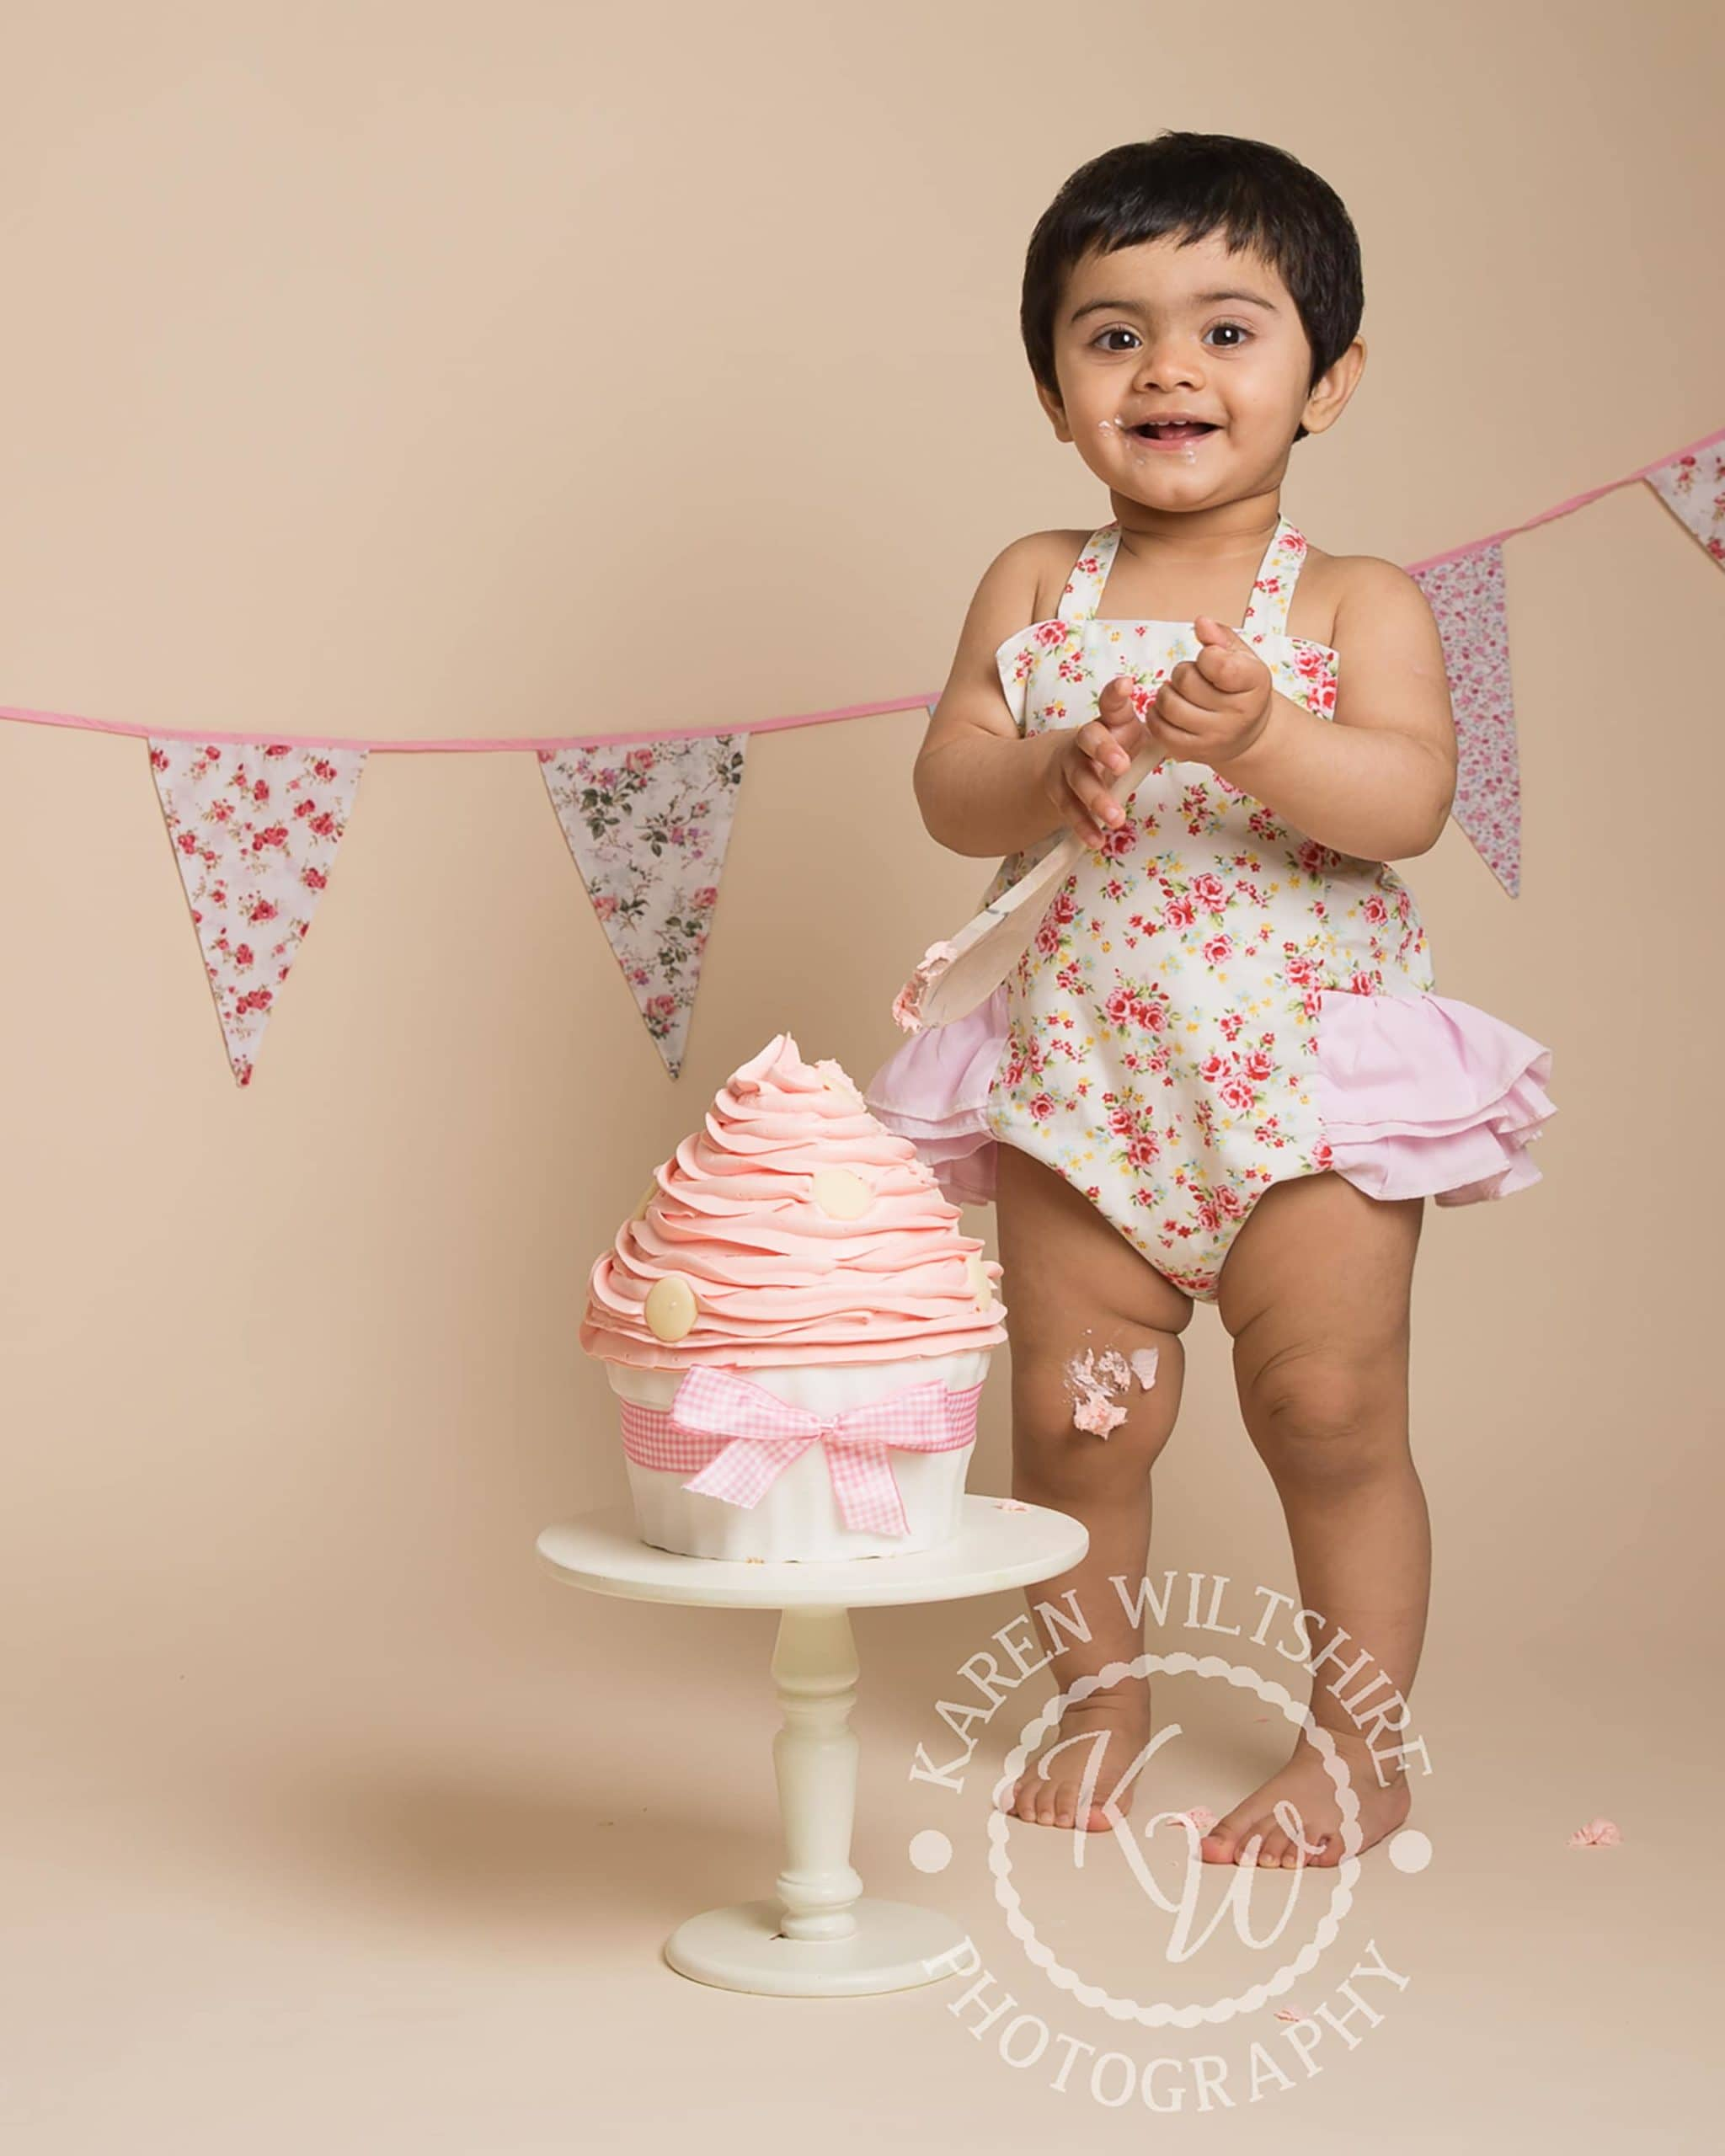 baby girl standing over a pink giant cupcake ready to hit it with a spoon